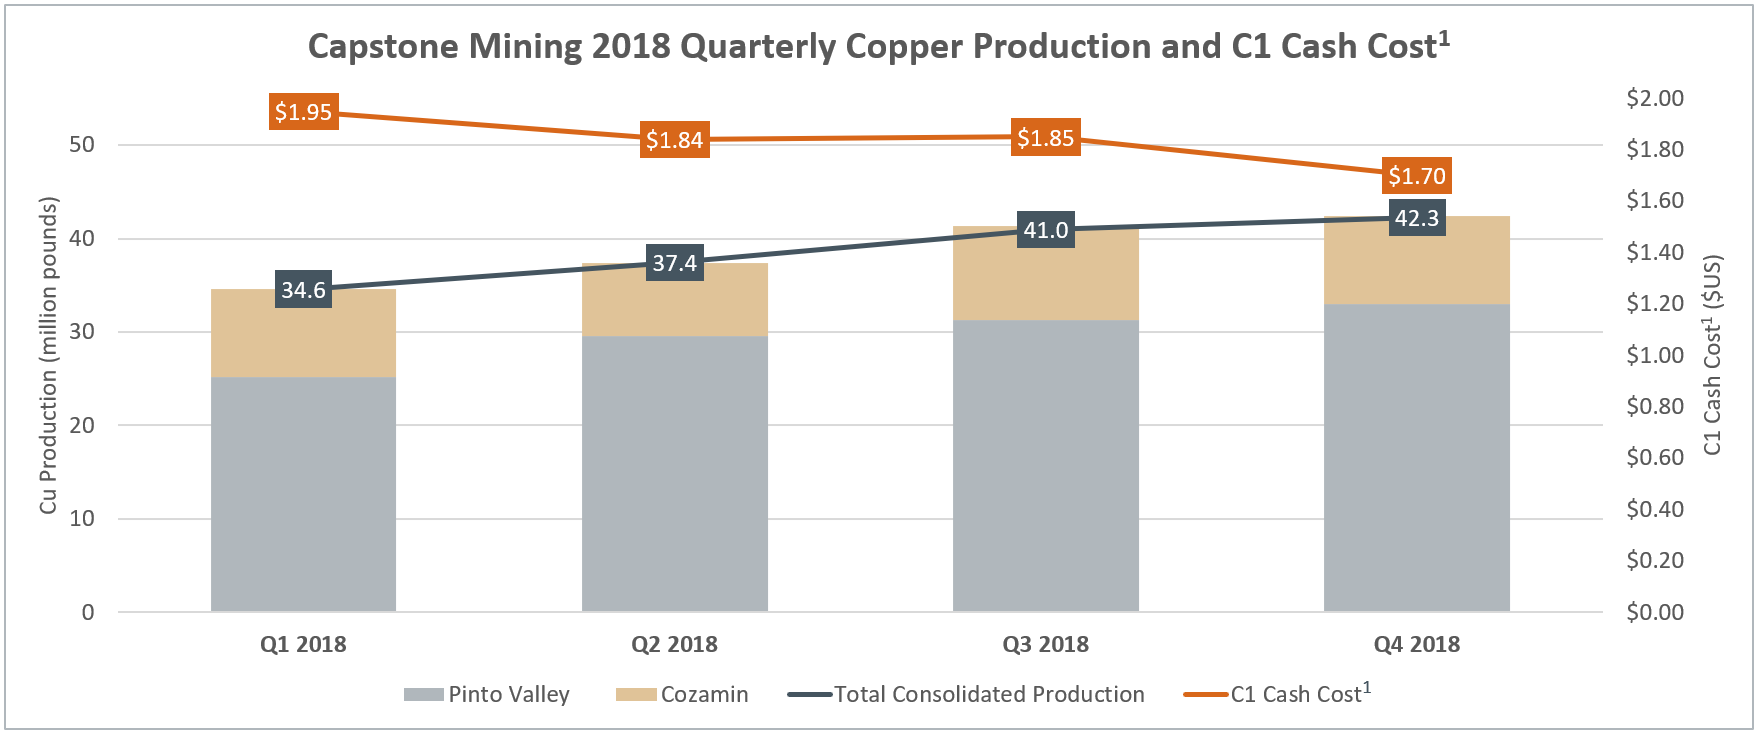 Capstone Mining Corp. 2018 Quarterly Copper Production and C1 Cash Cost(1) (CNW Group/Capstone Mining Corp.)